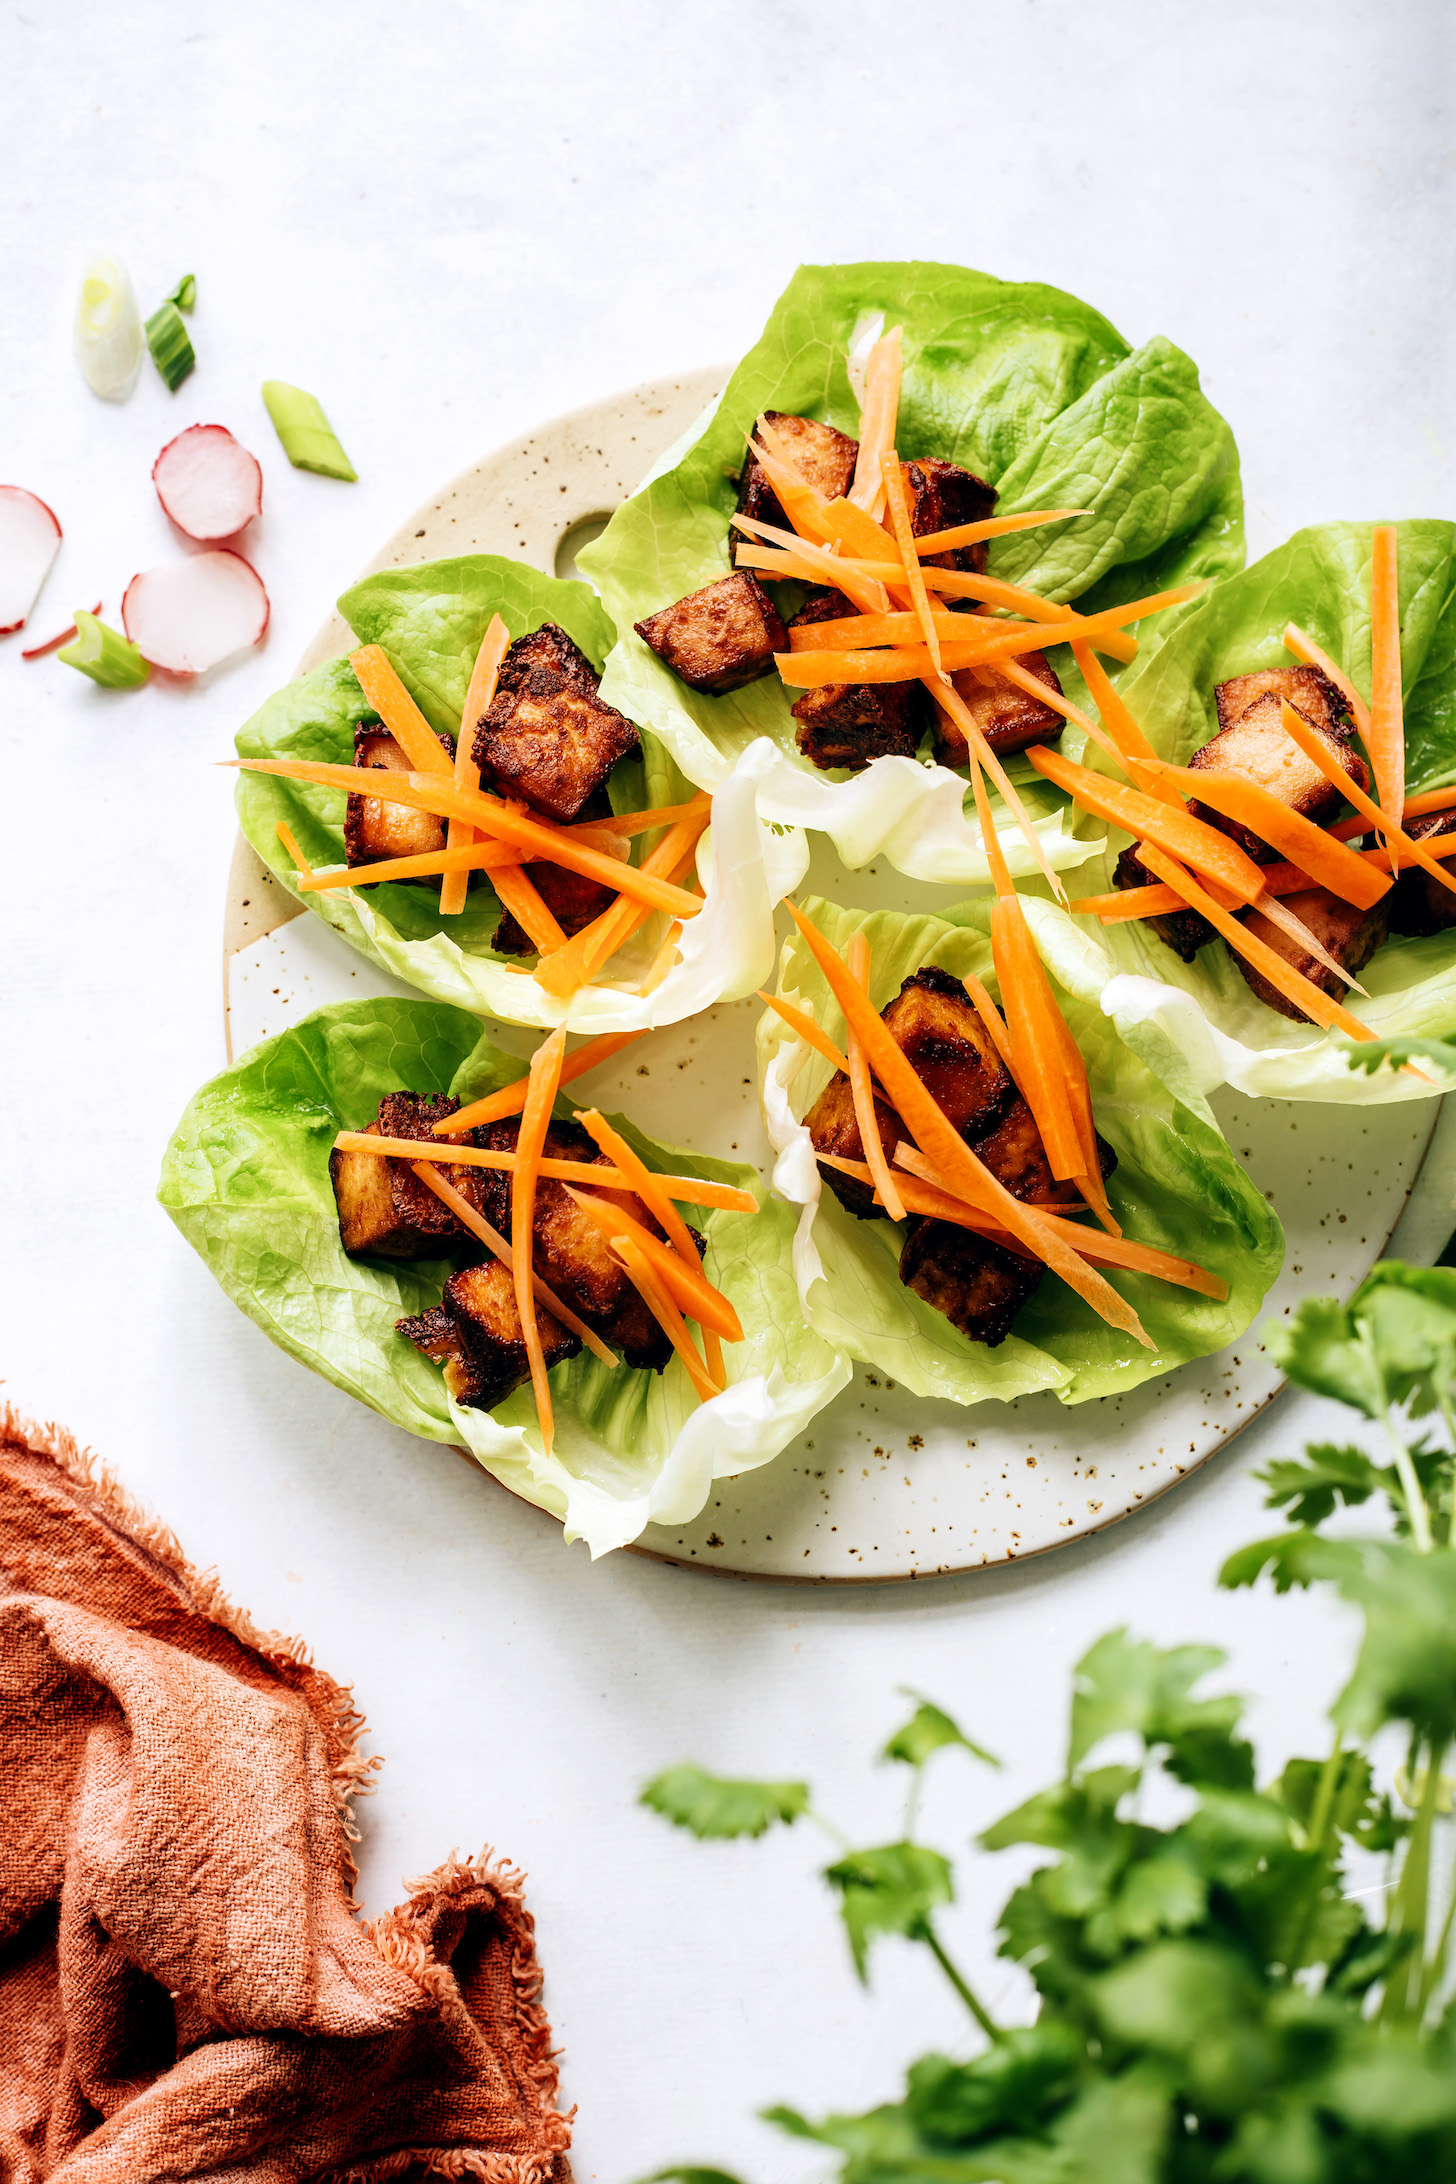 Lettuce leaves topped with crispy tofu and sliced carrots